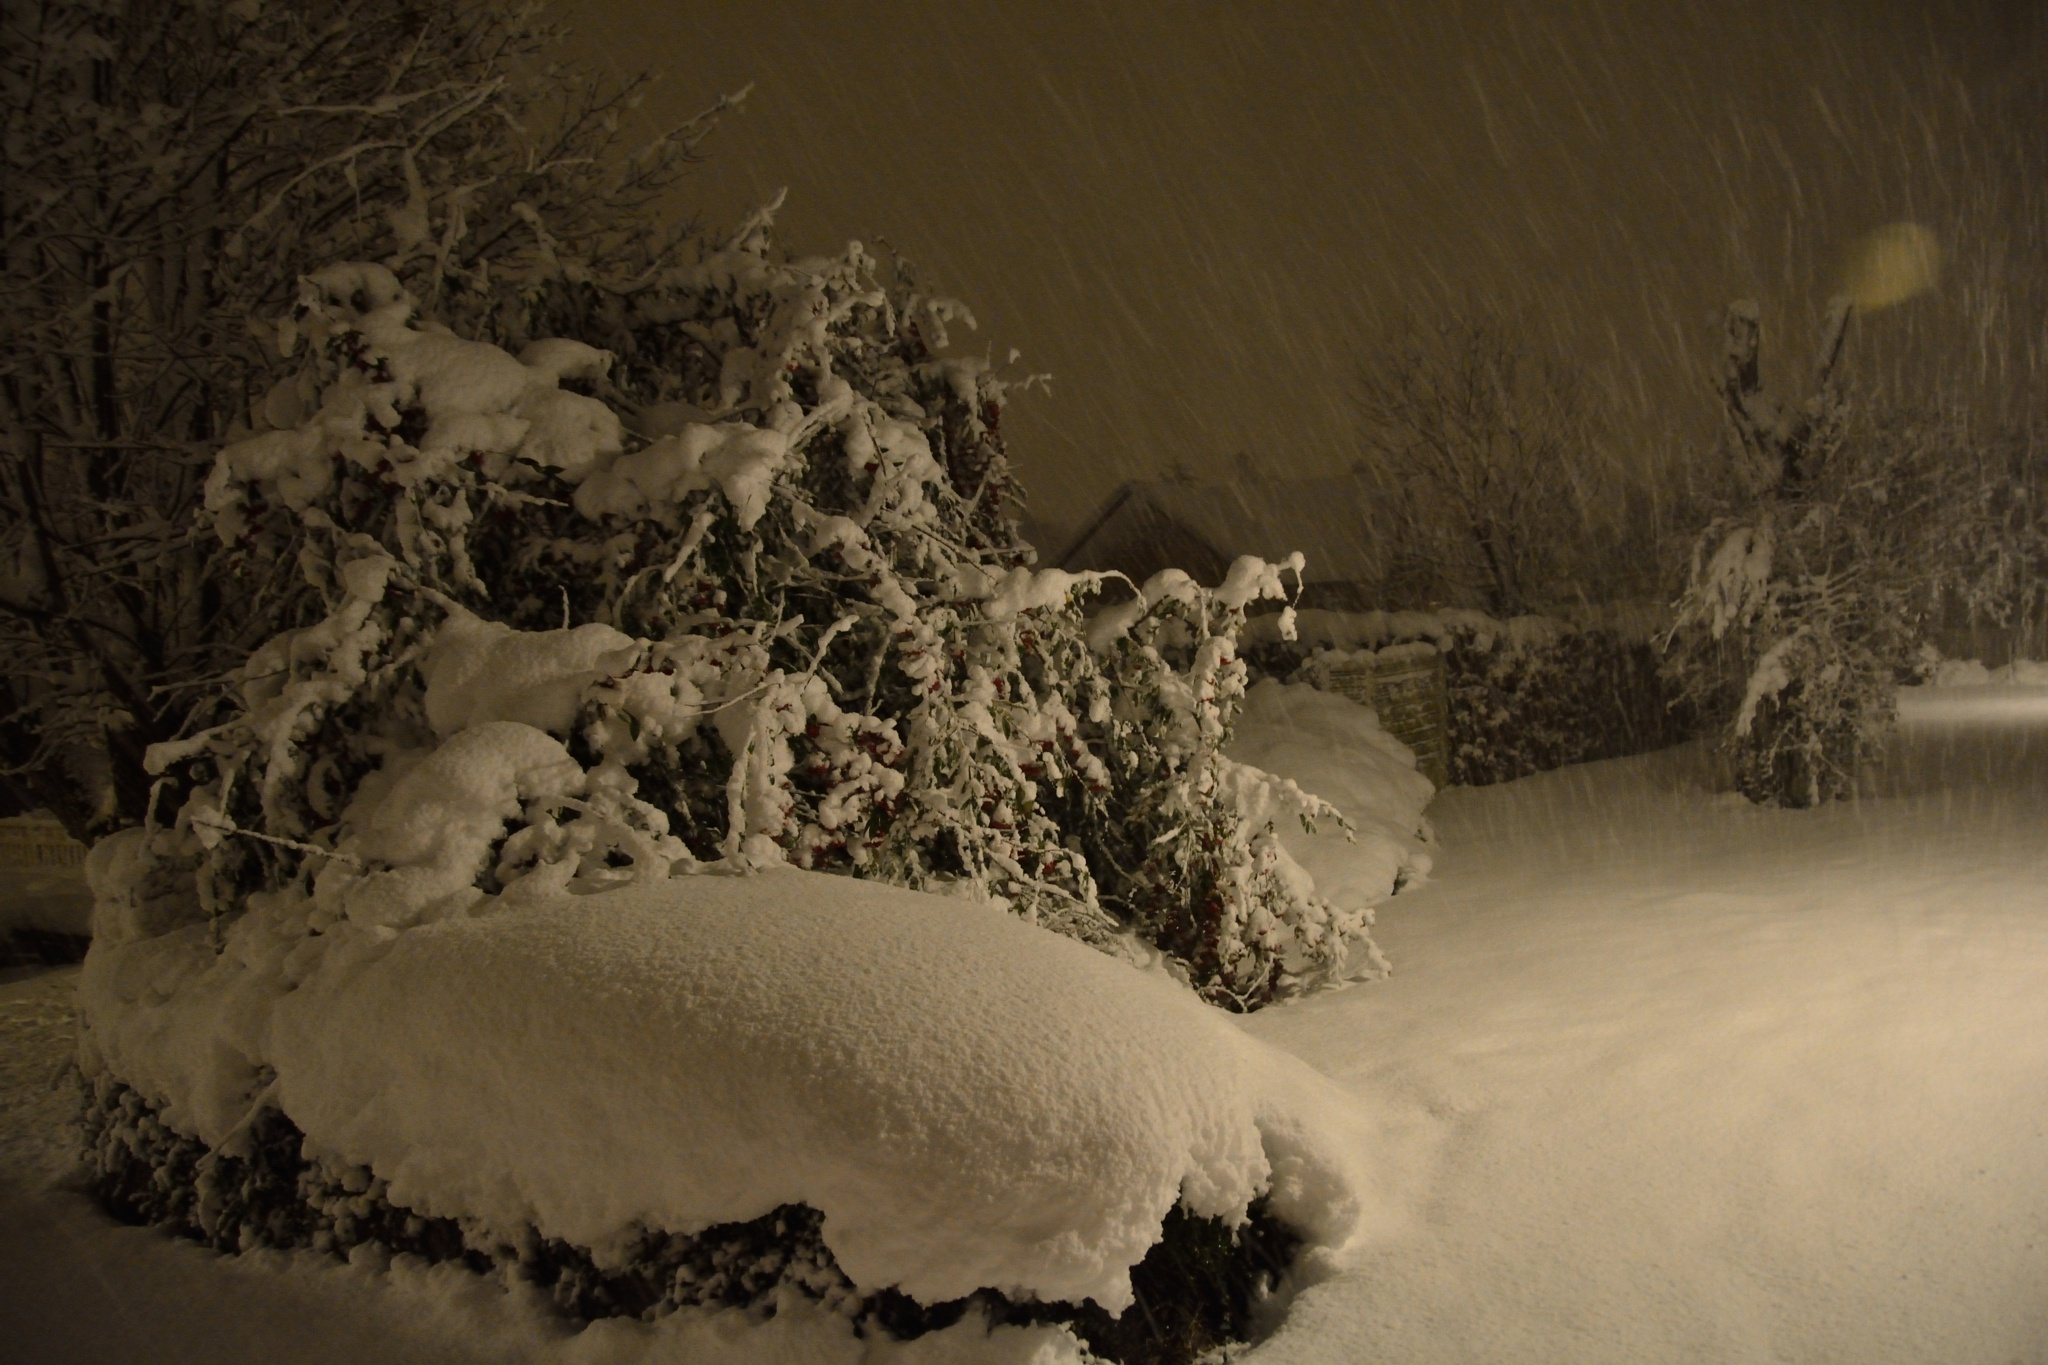 Night in snow by Kenneth H. Petersen